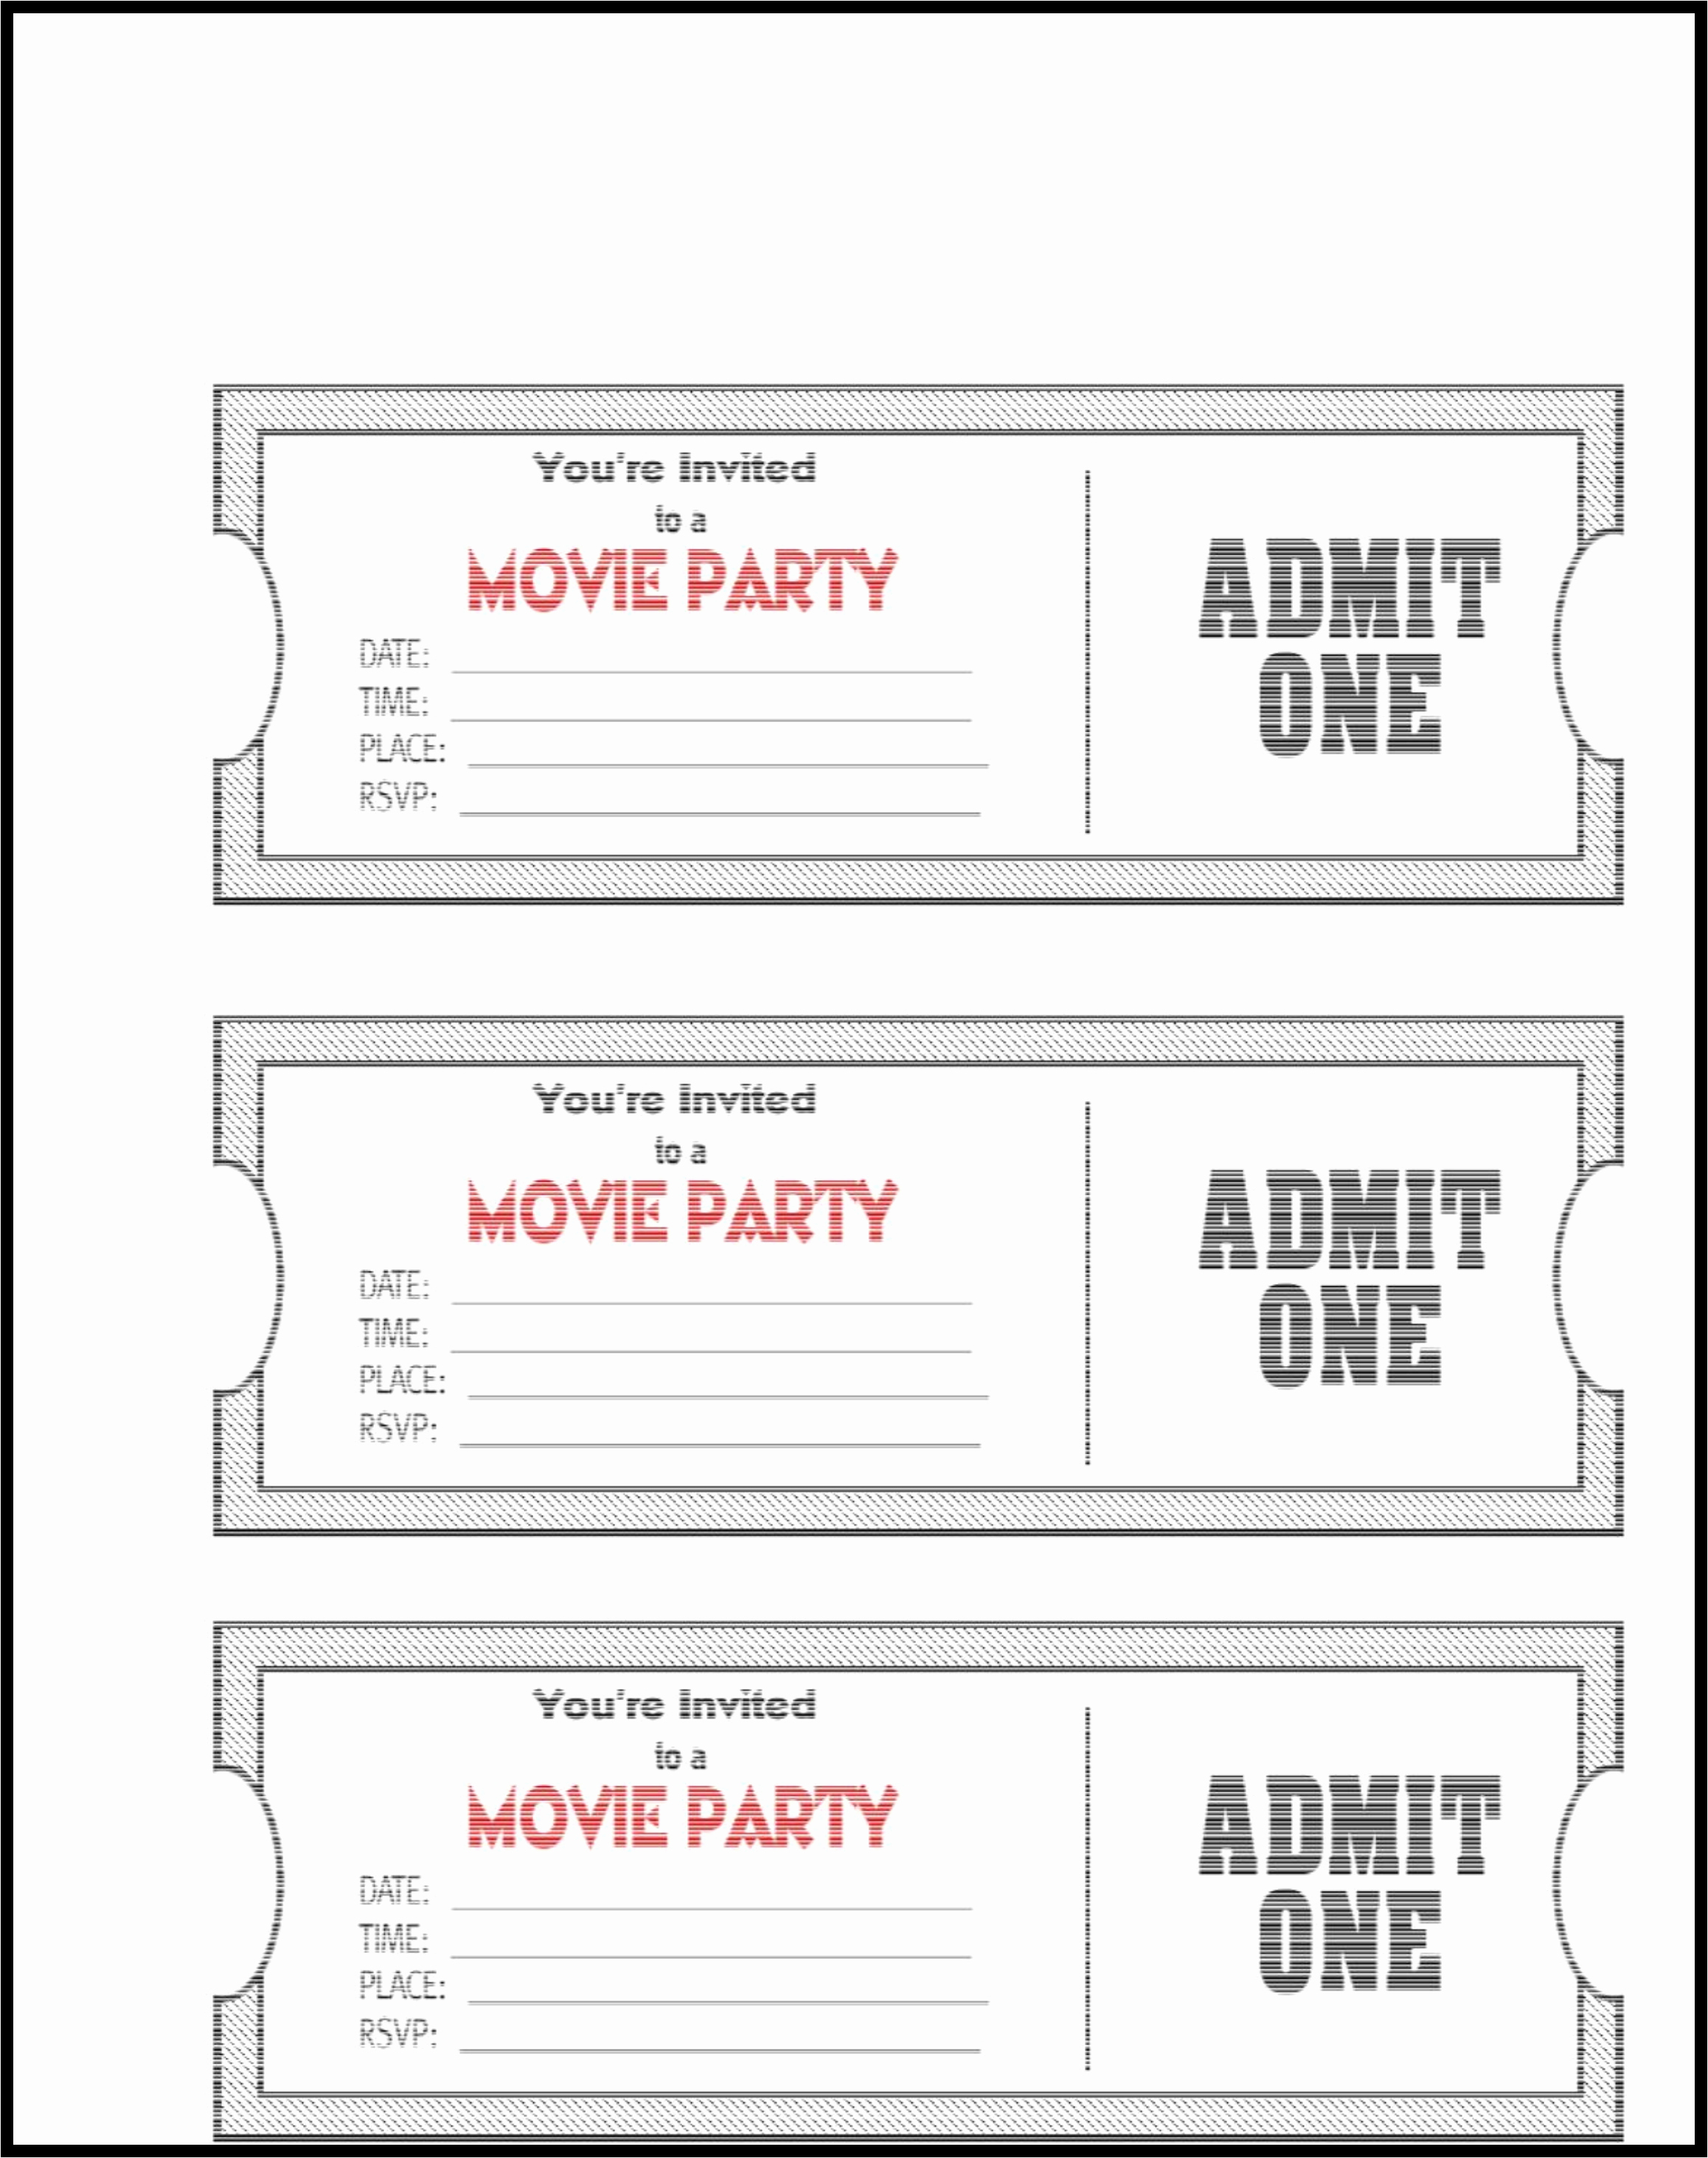 Admit One Ticket Template Elegant Admit E Ticket Template Example Mughals